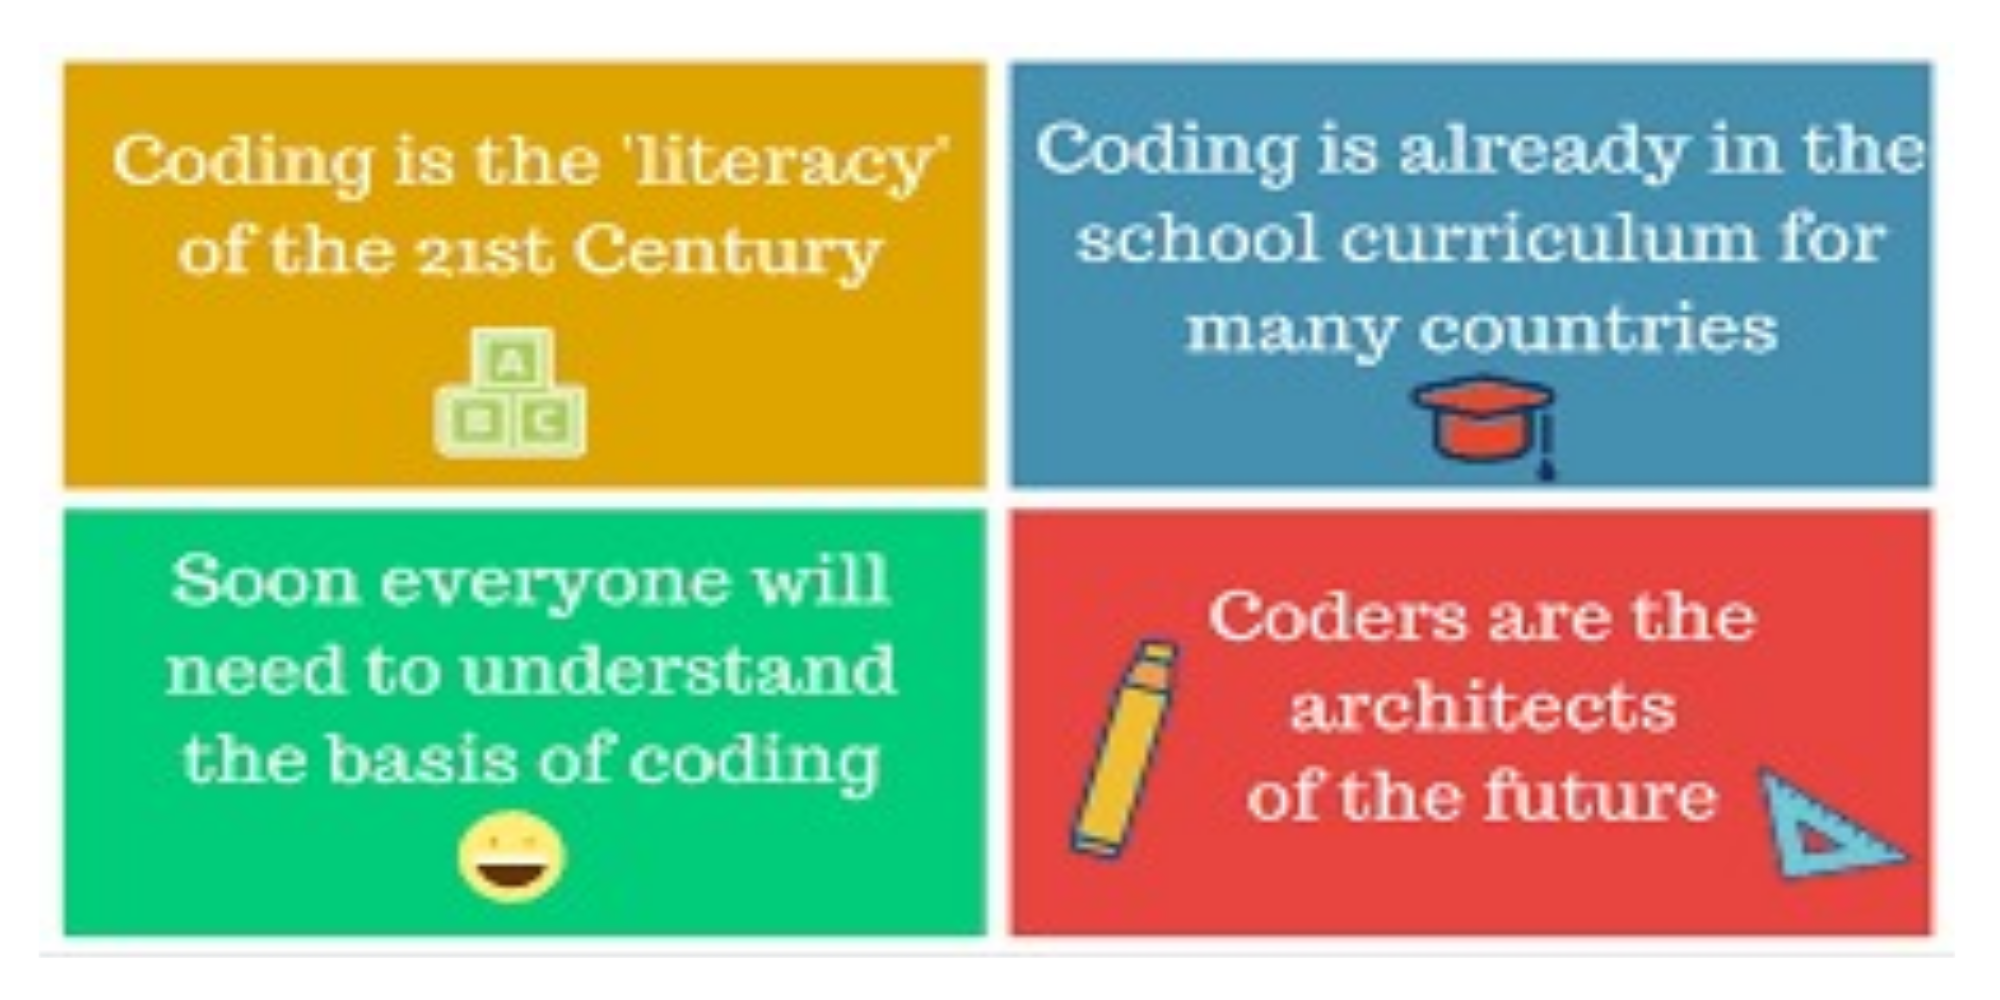 Coding: A Tool for developing 21st Century Skills in Children